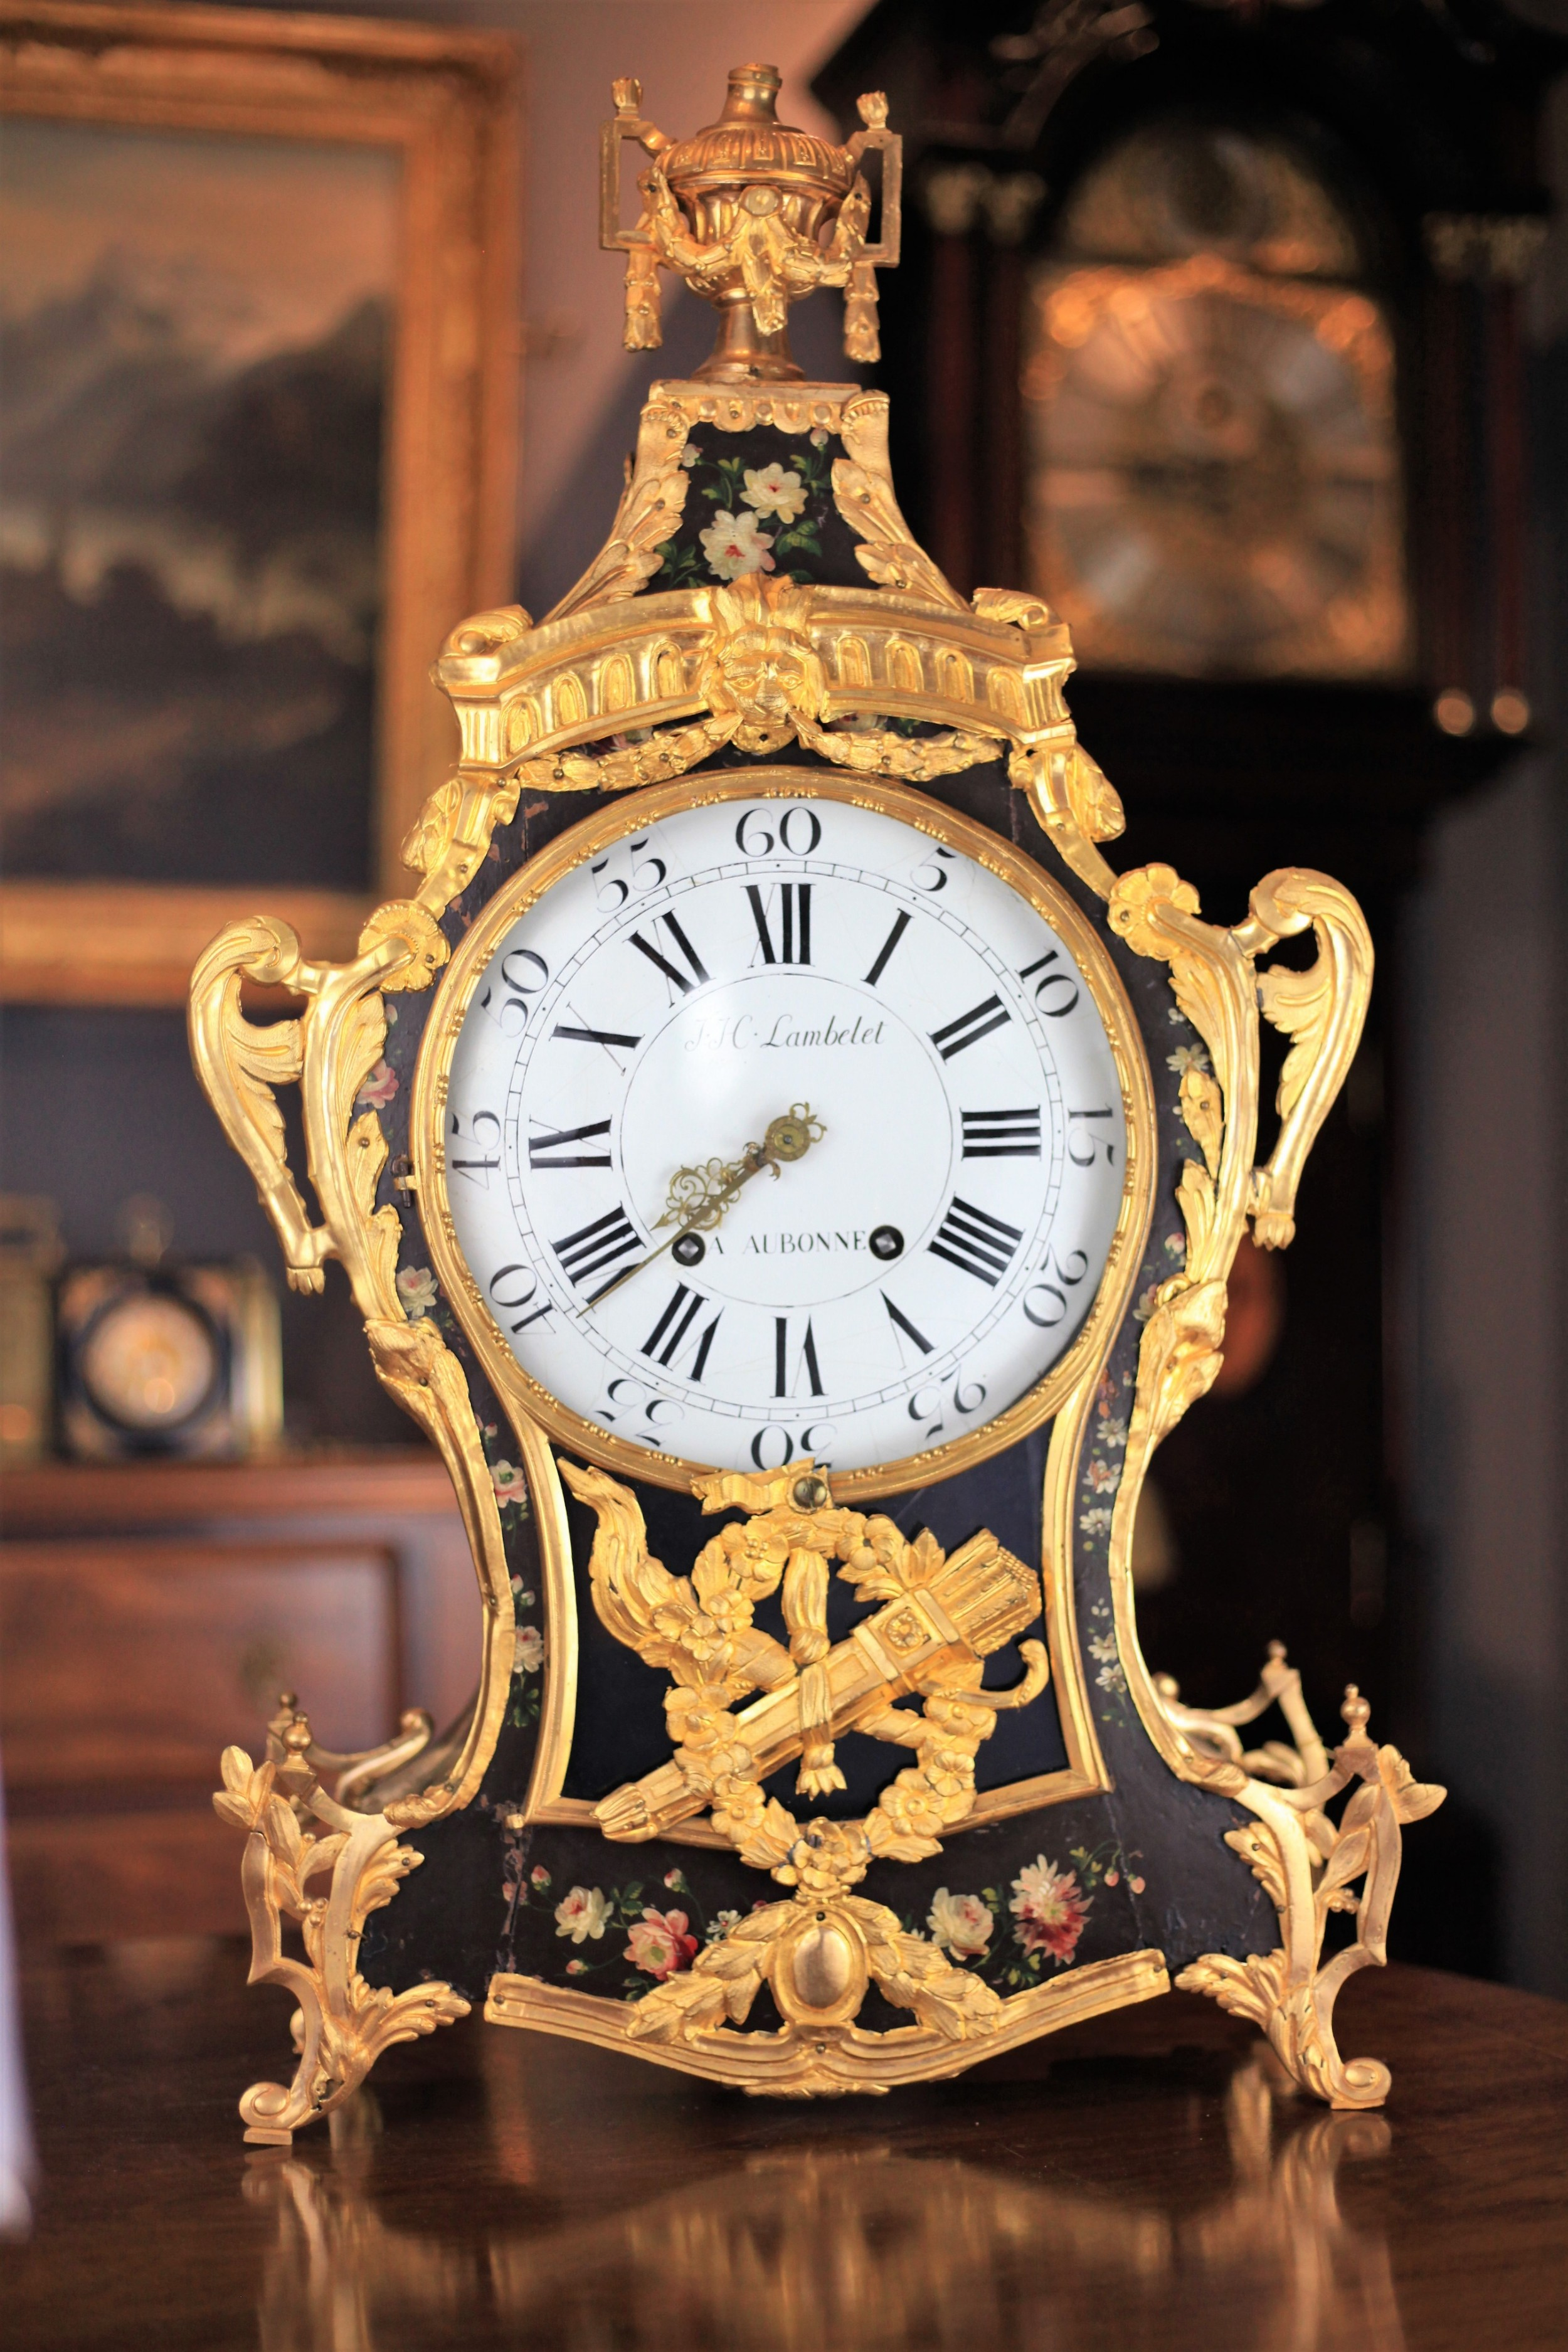 a late 18th century neuchatel quarter repeating bracket clock by lambelet c1780